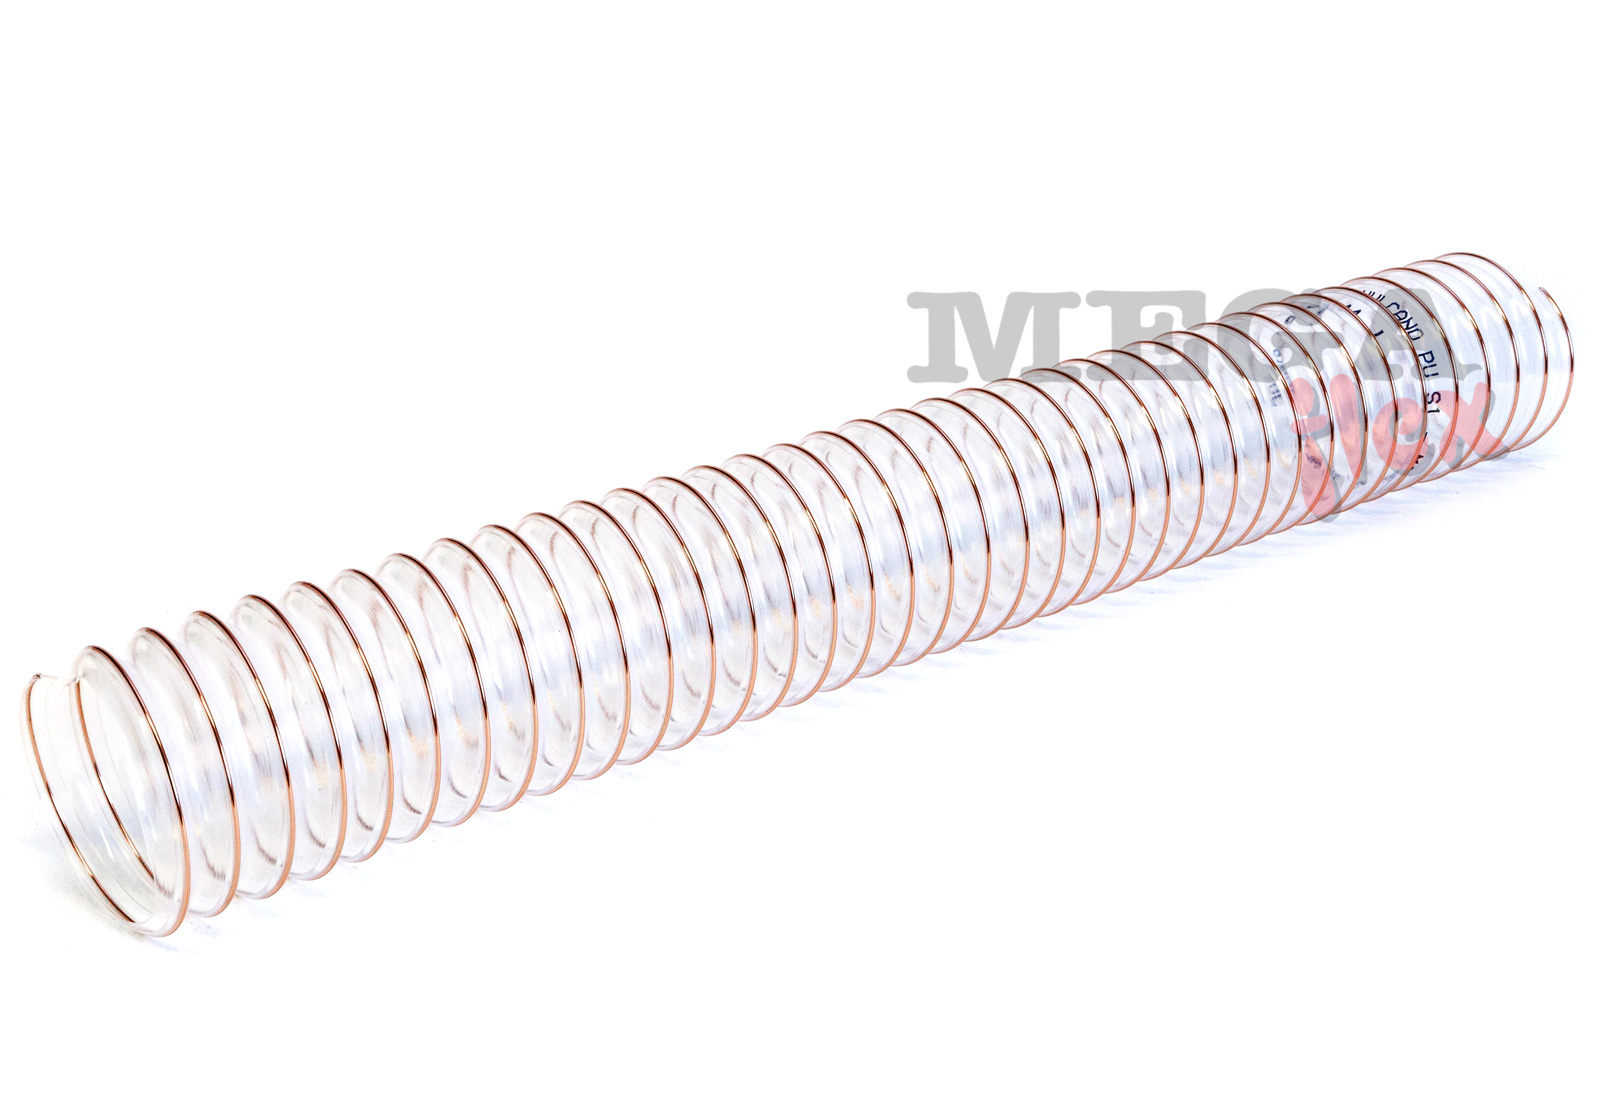 Vulcano PU S1 - Ester Polyurethane Ducting Reinforced with Steel Wire Helix (Light Duty)